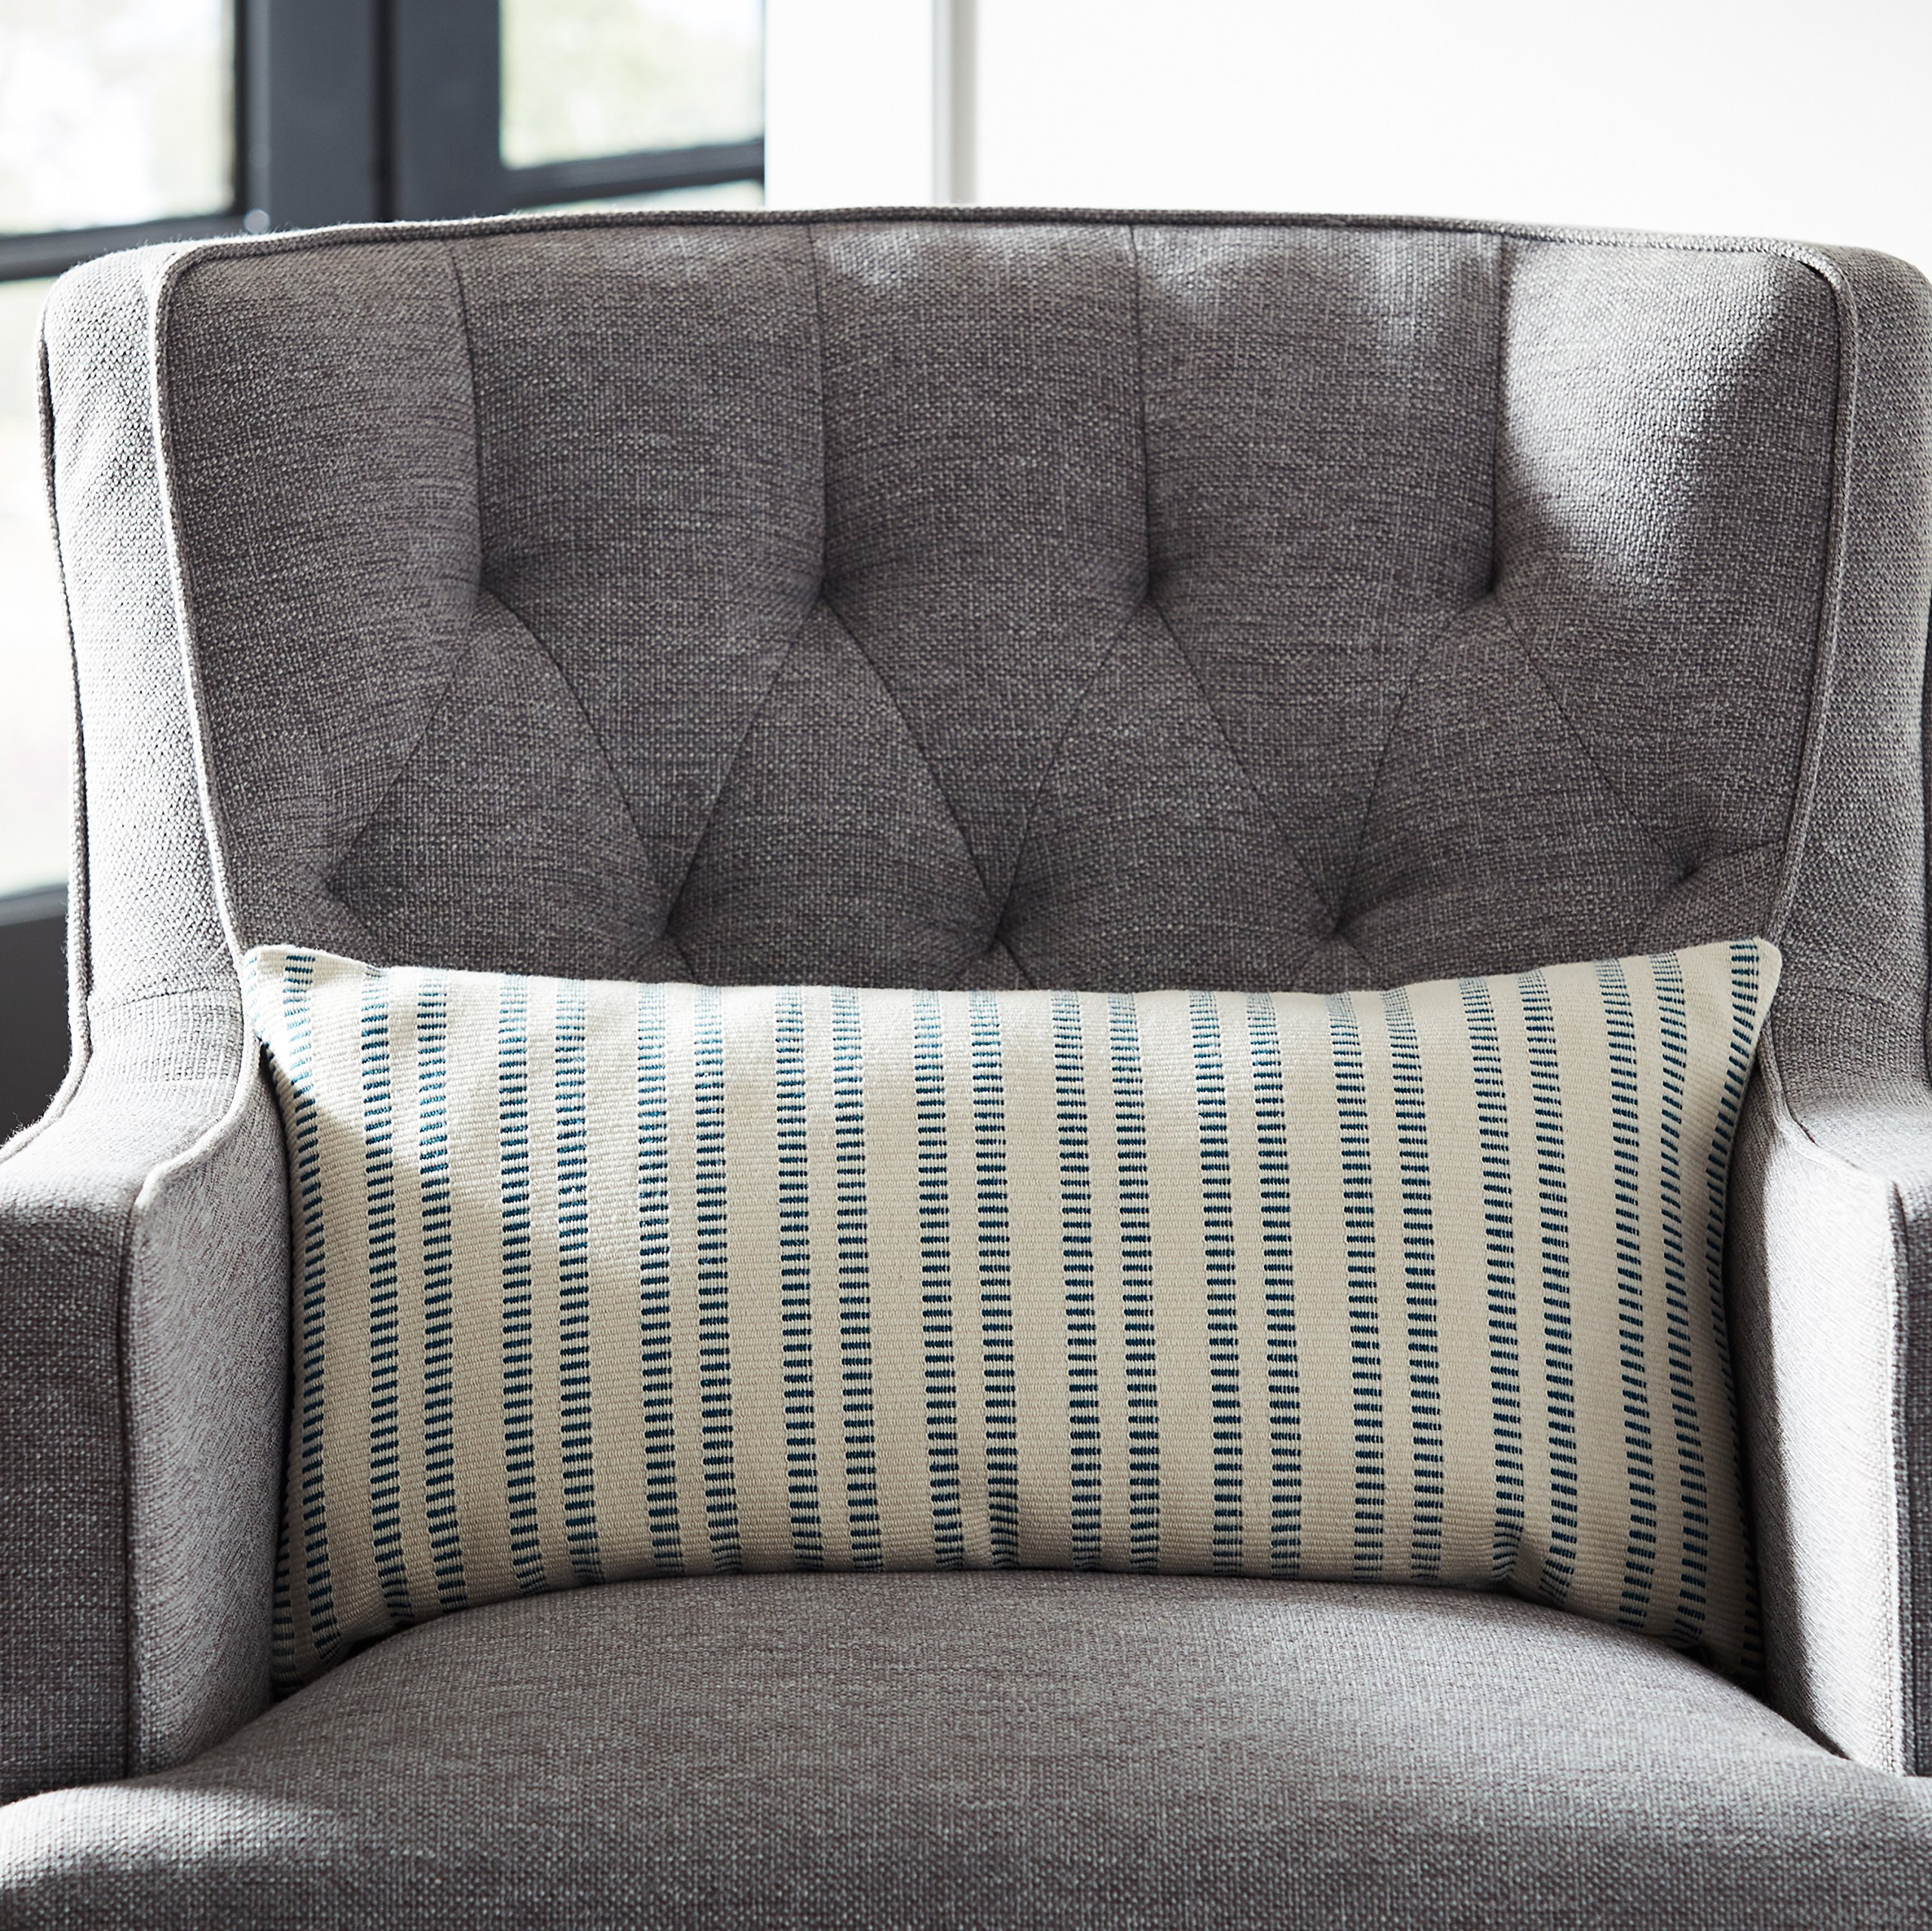 Stone & Beam French Laundry Stripe Pillow, 12'' x 24'', Ivory, Turquoise by Stone & Beam (Image #4)